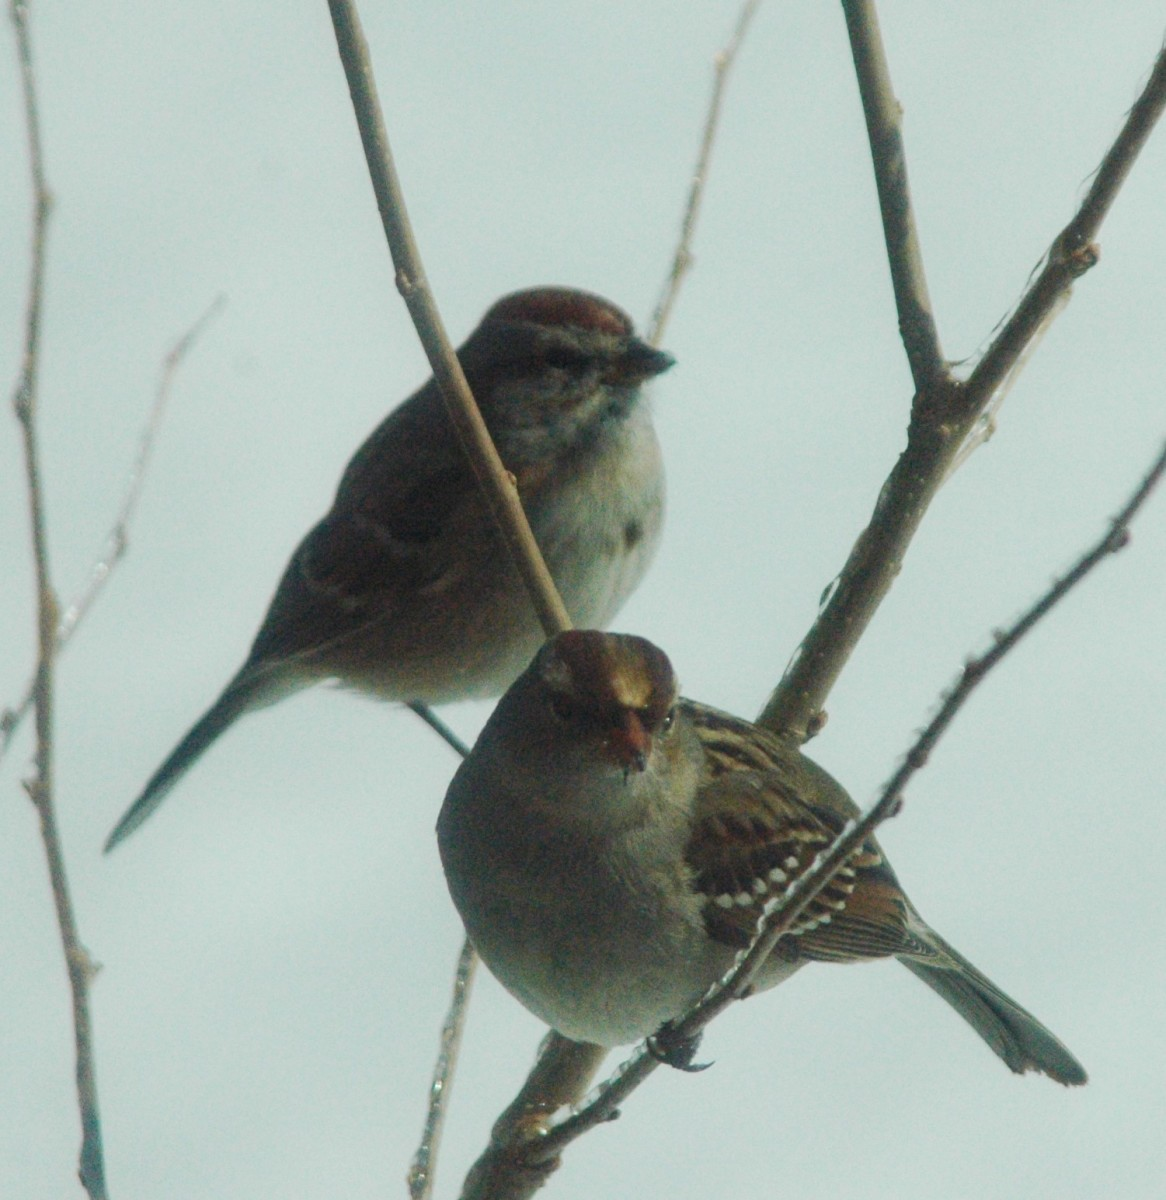 According to the ancient Egyptians, sparrows caught the souls of the recently deceased and carried them to heaven.